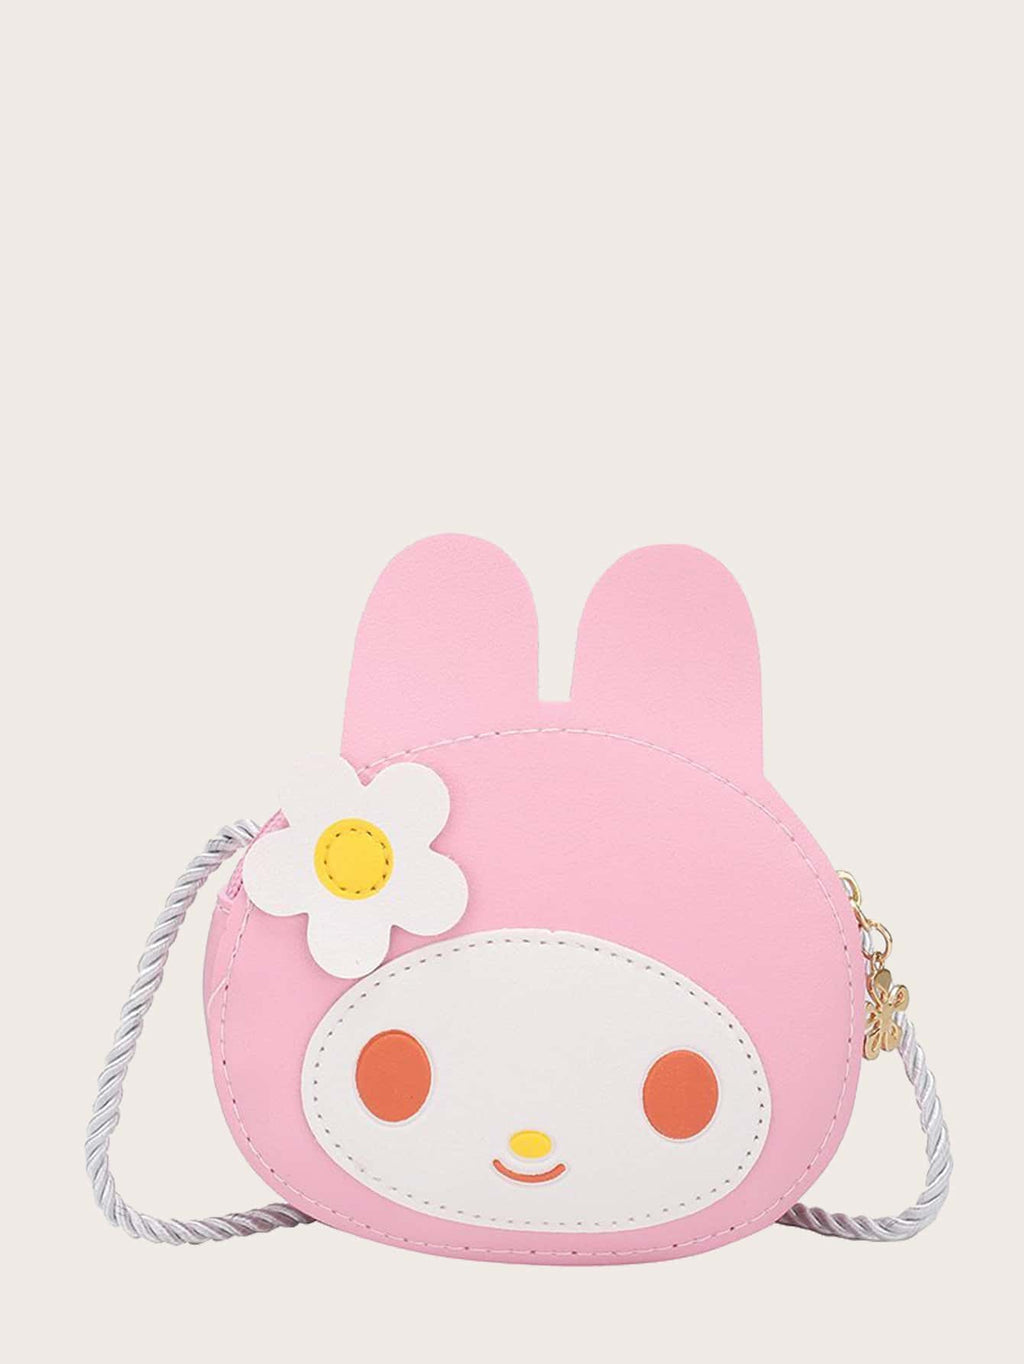 Girls Cartoon Design Crossbody Bag